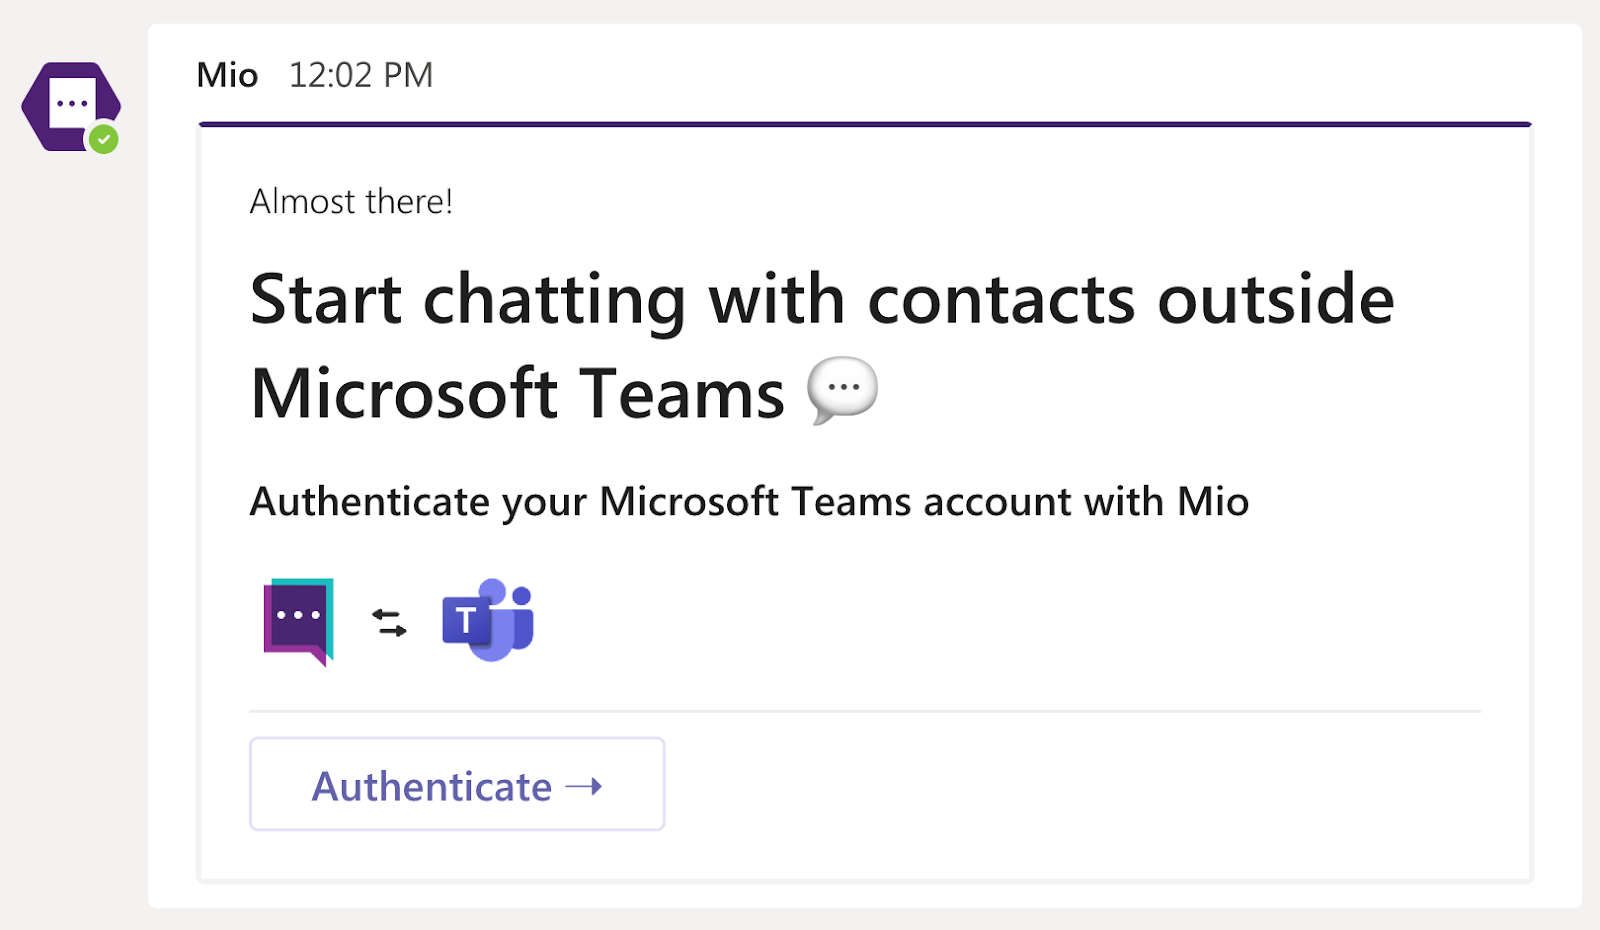 Authenticate your account for the Mio app